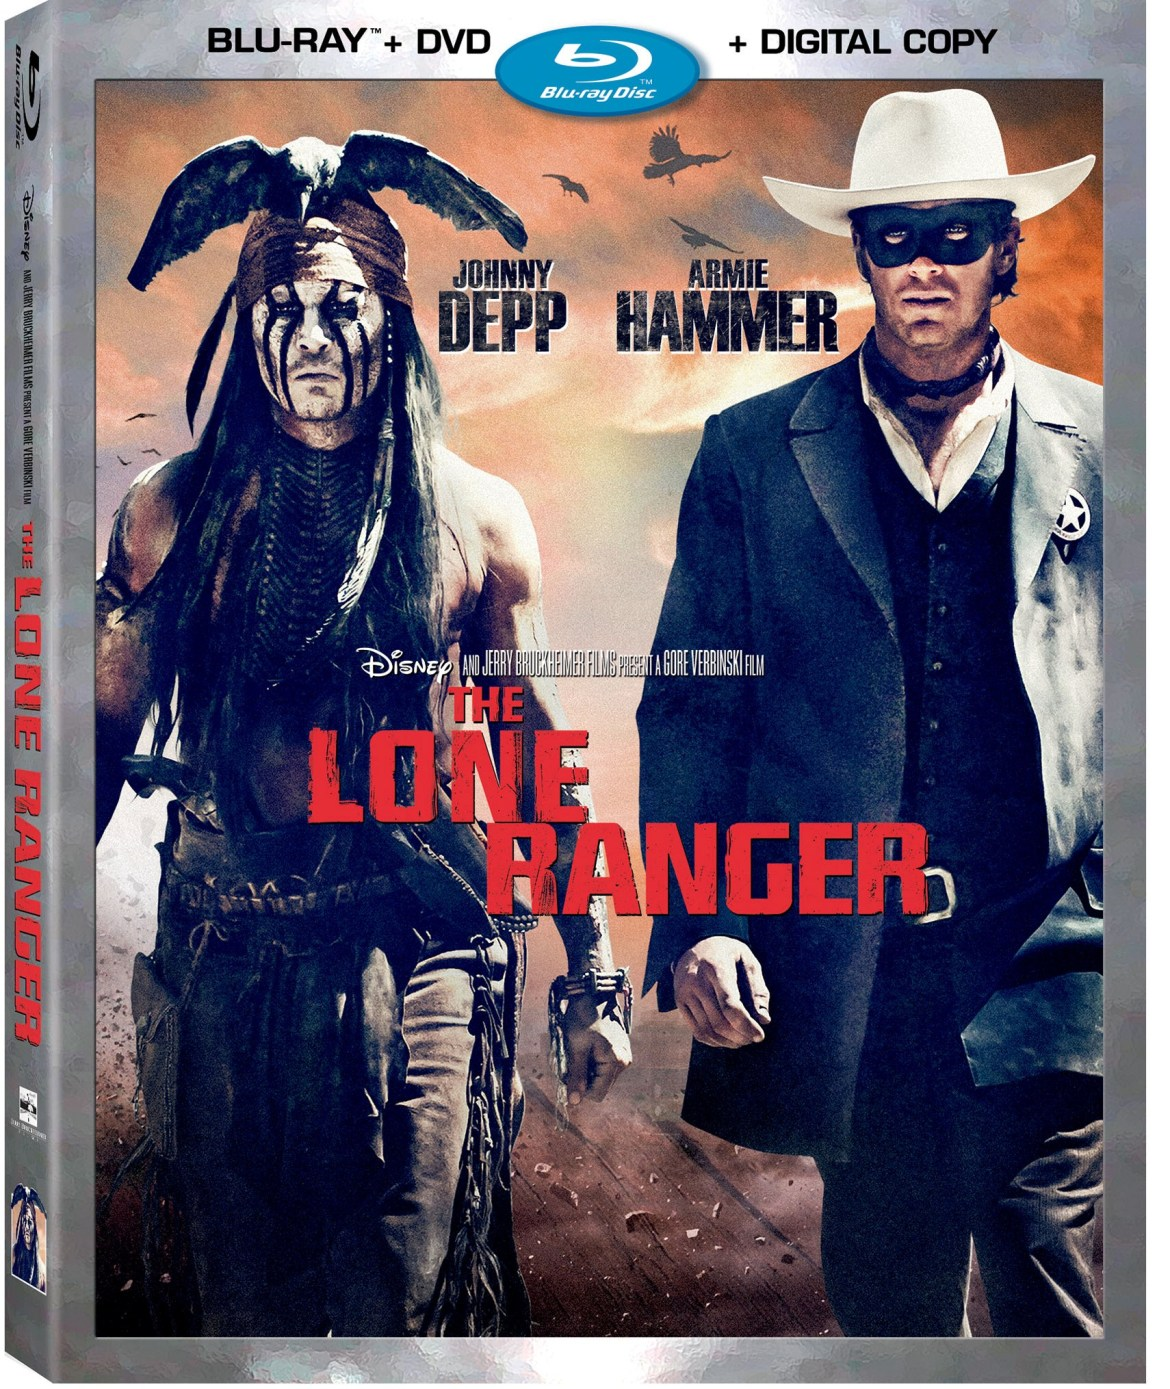 The Lone Ranger Rides Into Town on December 17th